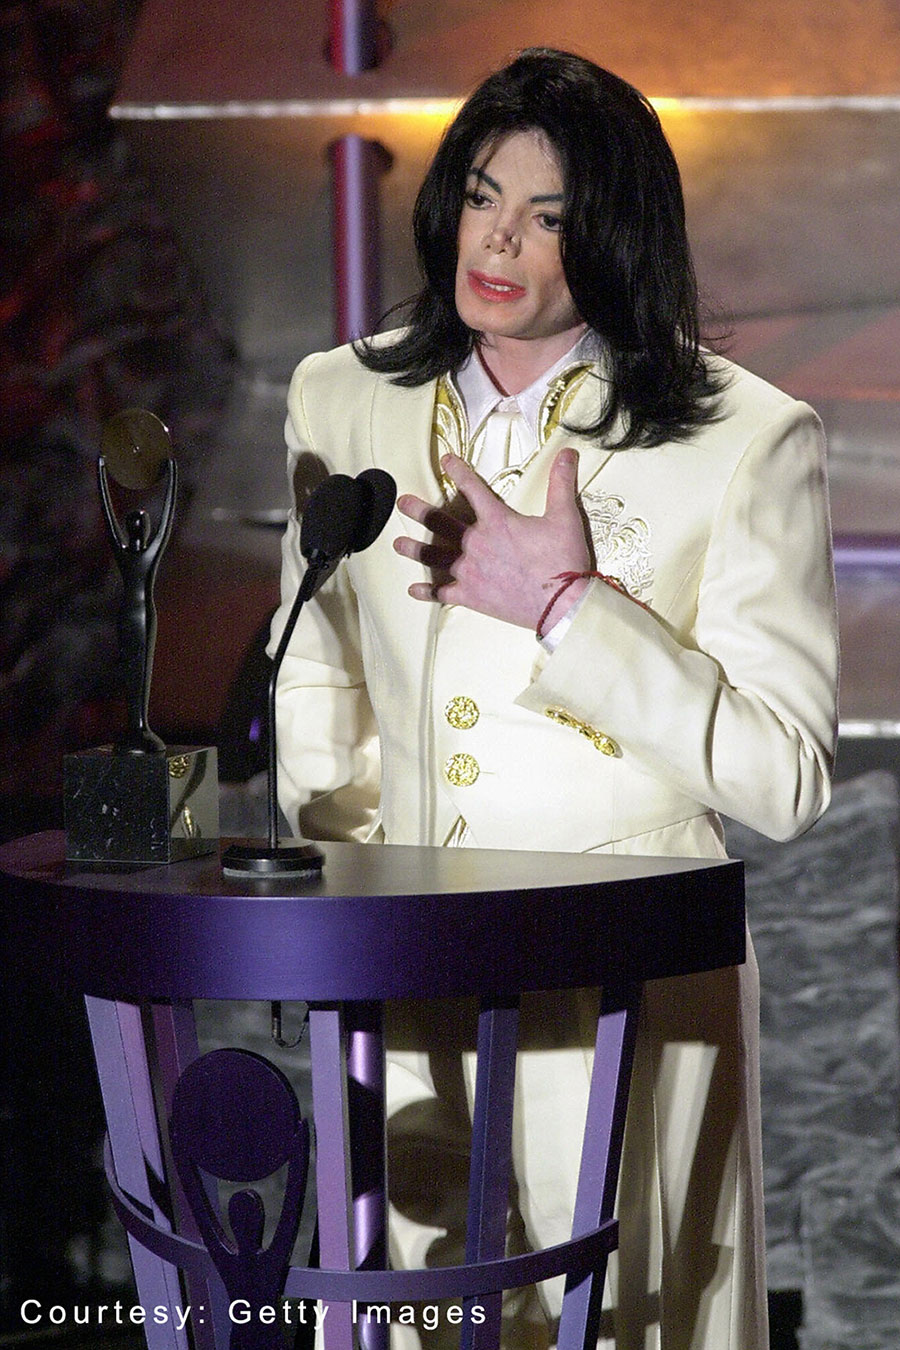 Michael Jackson inducted into Rock & Roll Hall of Fame as solo artist March 19, 2001